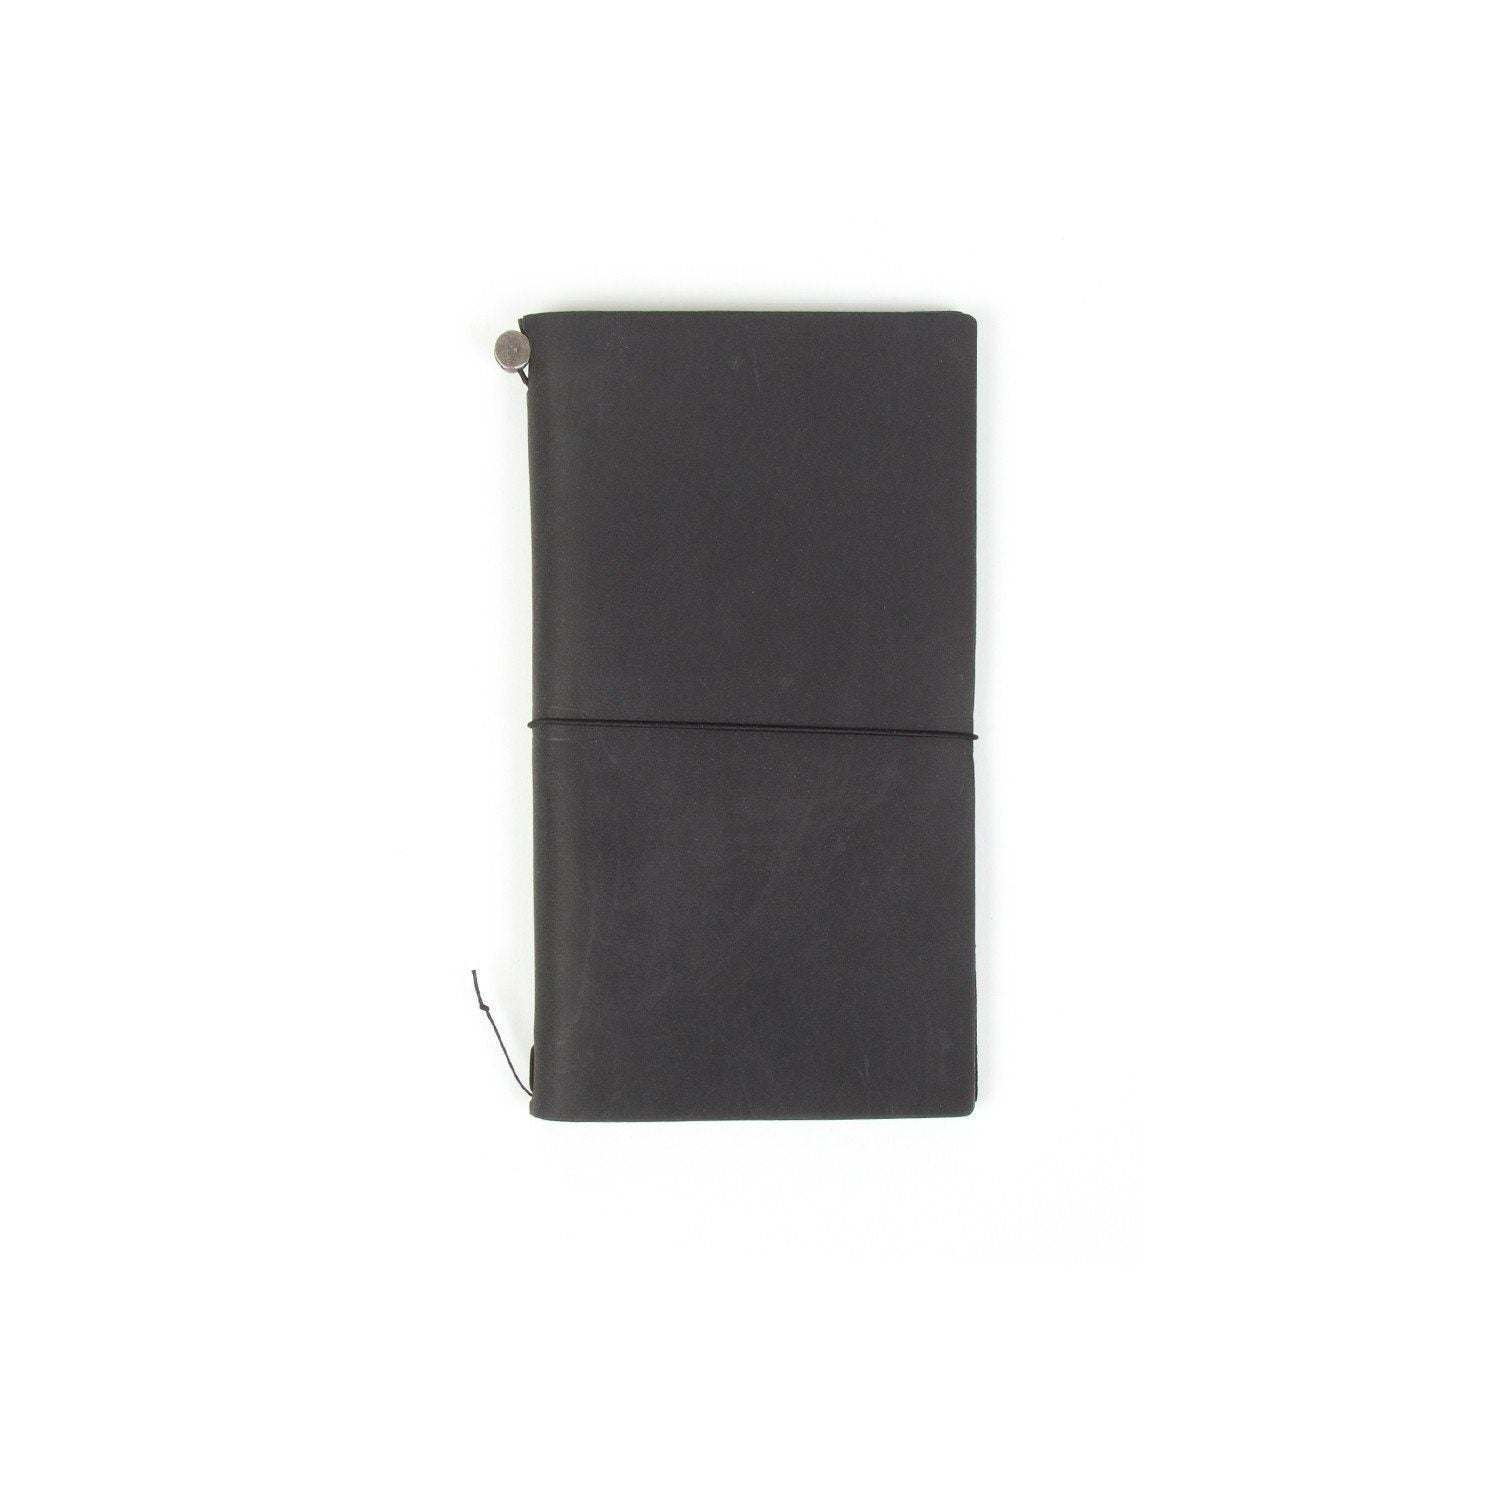 Traveler's Notebook (Black)